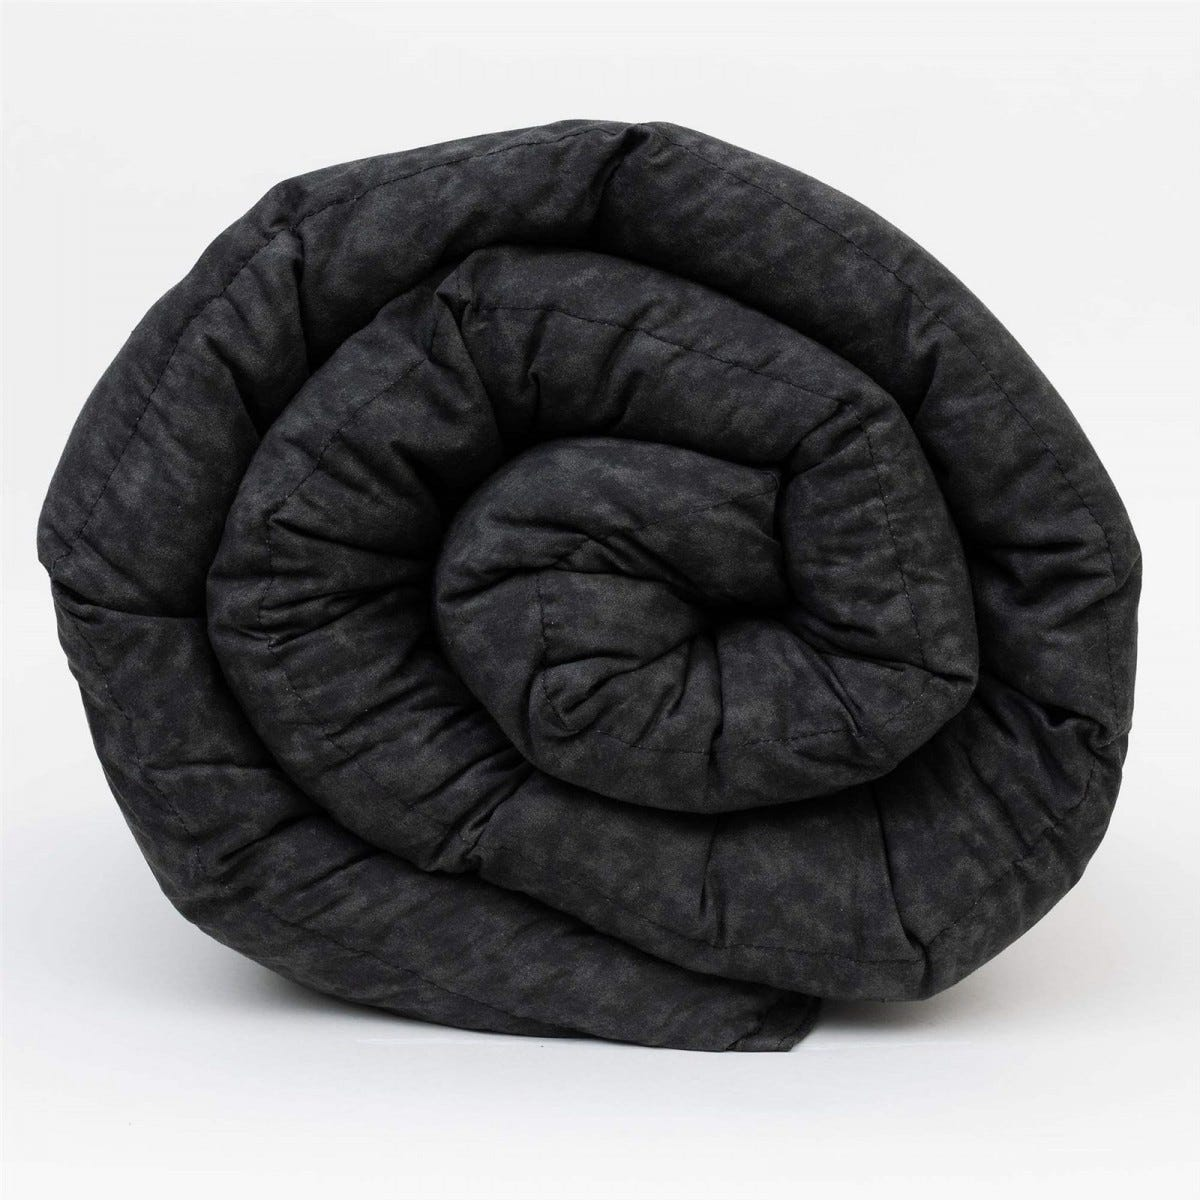 Mosaic black, rolled-up, weighted blanket.